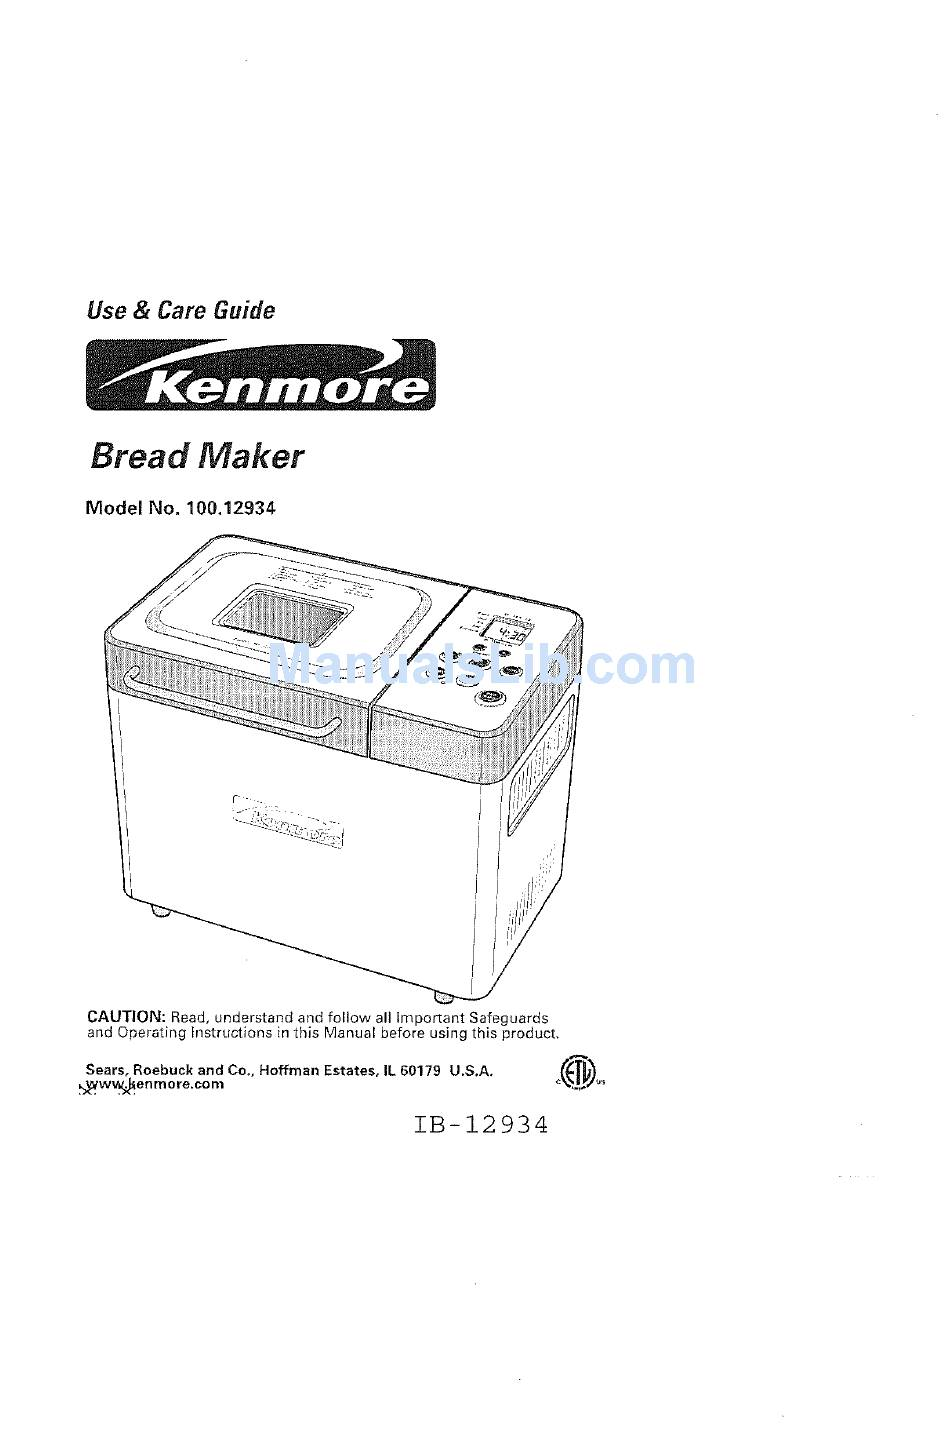 KENMORE 100.12934 USE AND CARE MANUAL Pdf Download